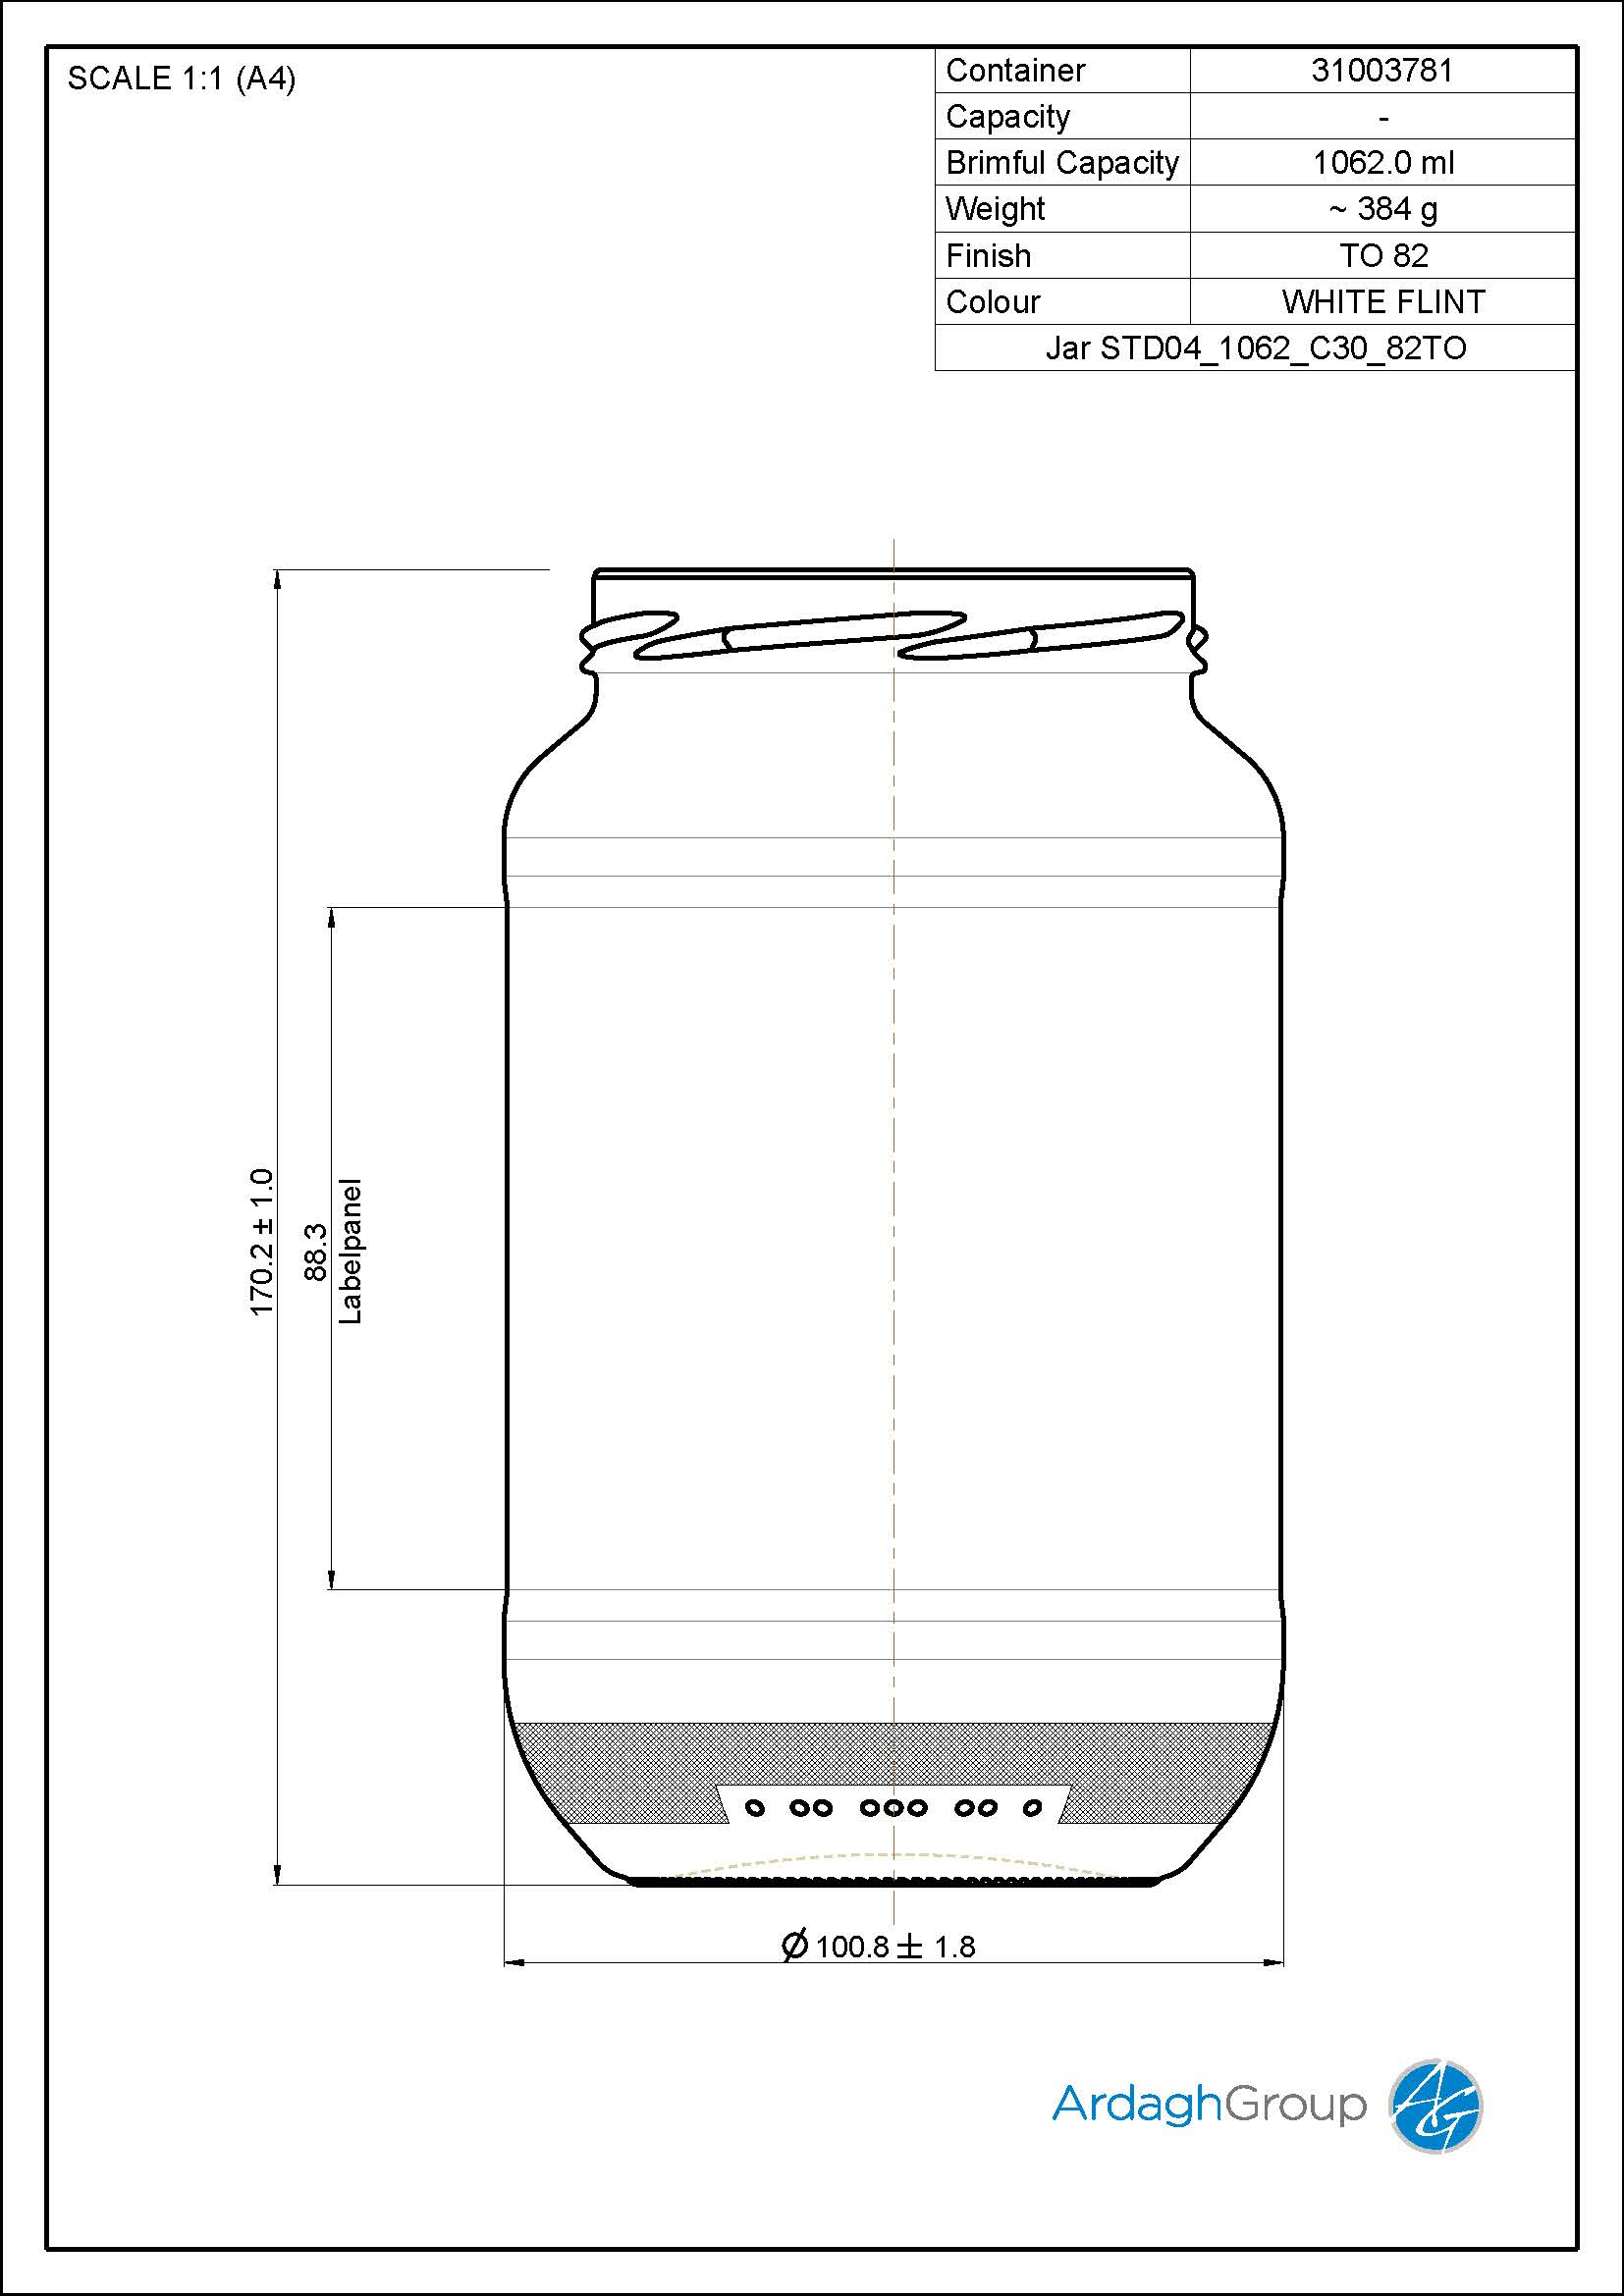 Jar STD04 1062 C30 82TO